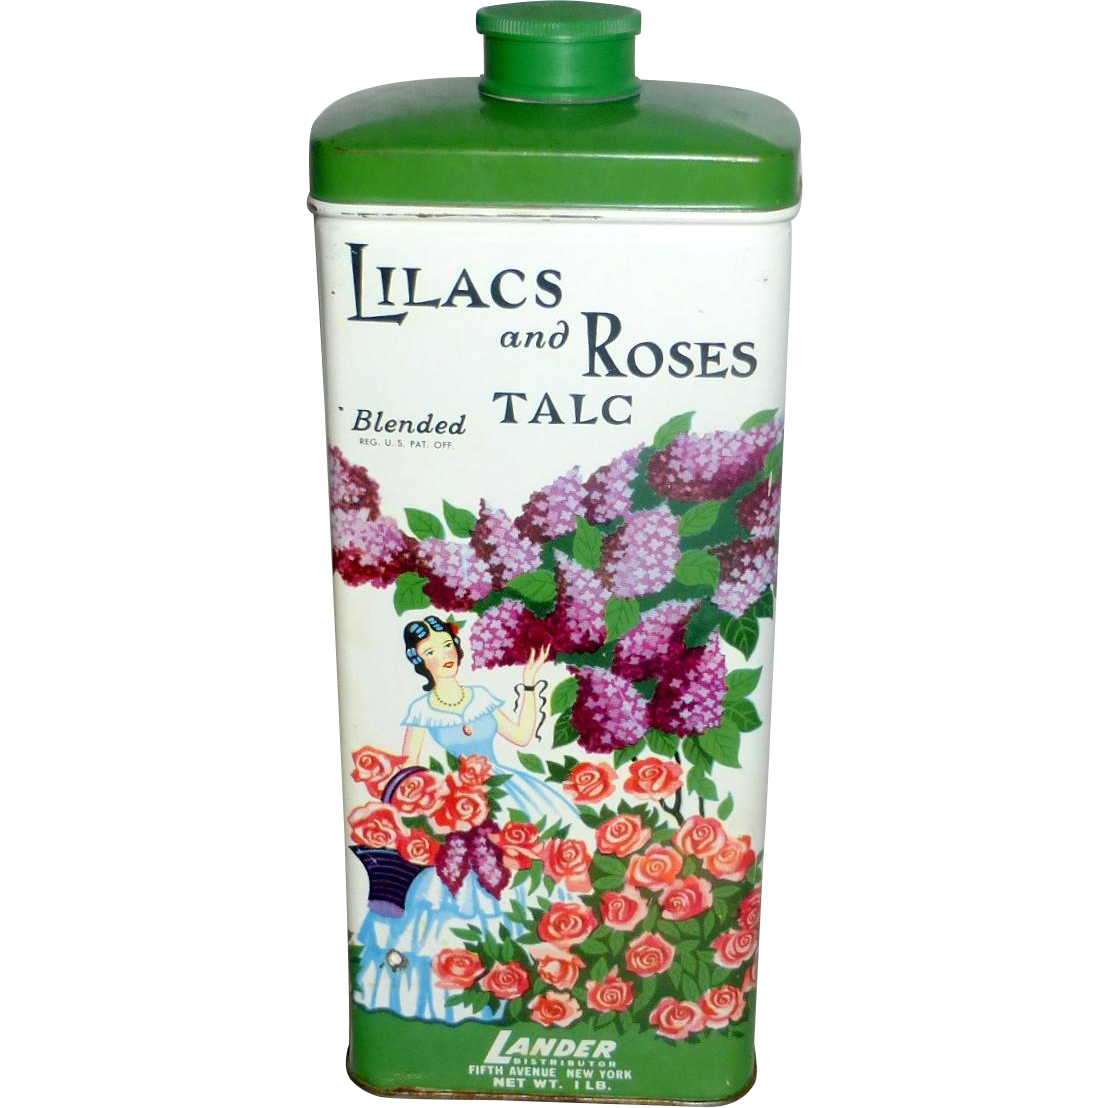 Vintage 1 lb Litho Tin of Lilacs & Roses Talc by Lander Clean Almost Full Can